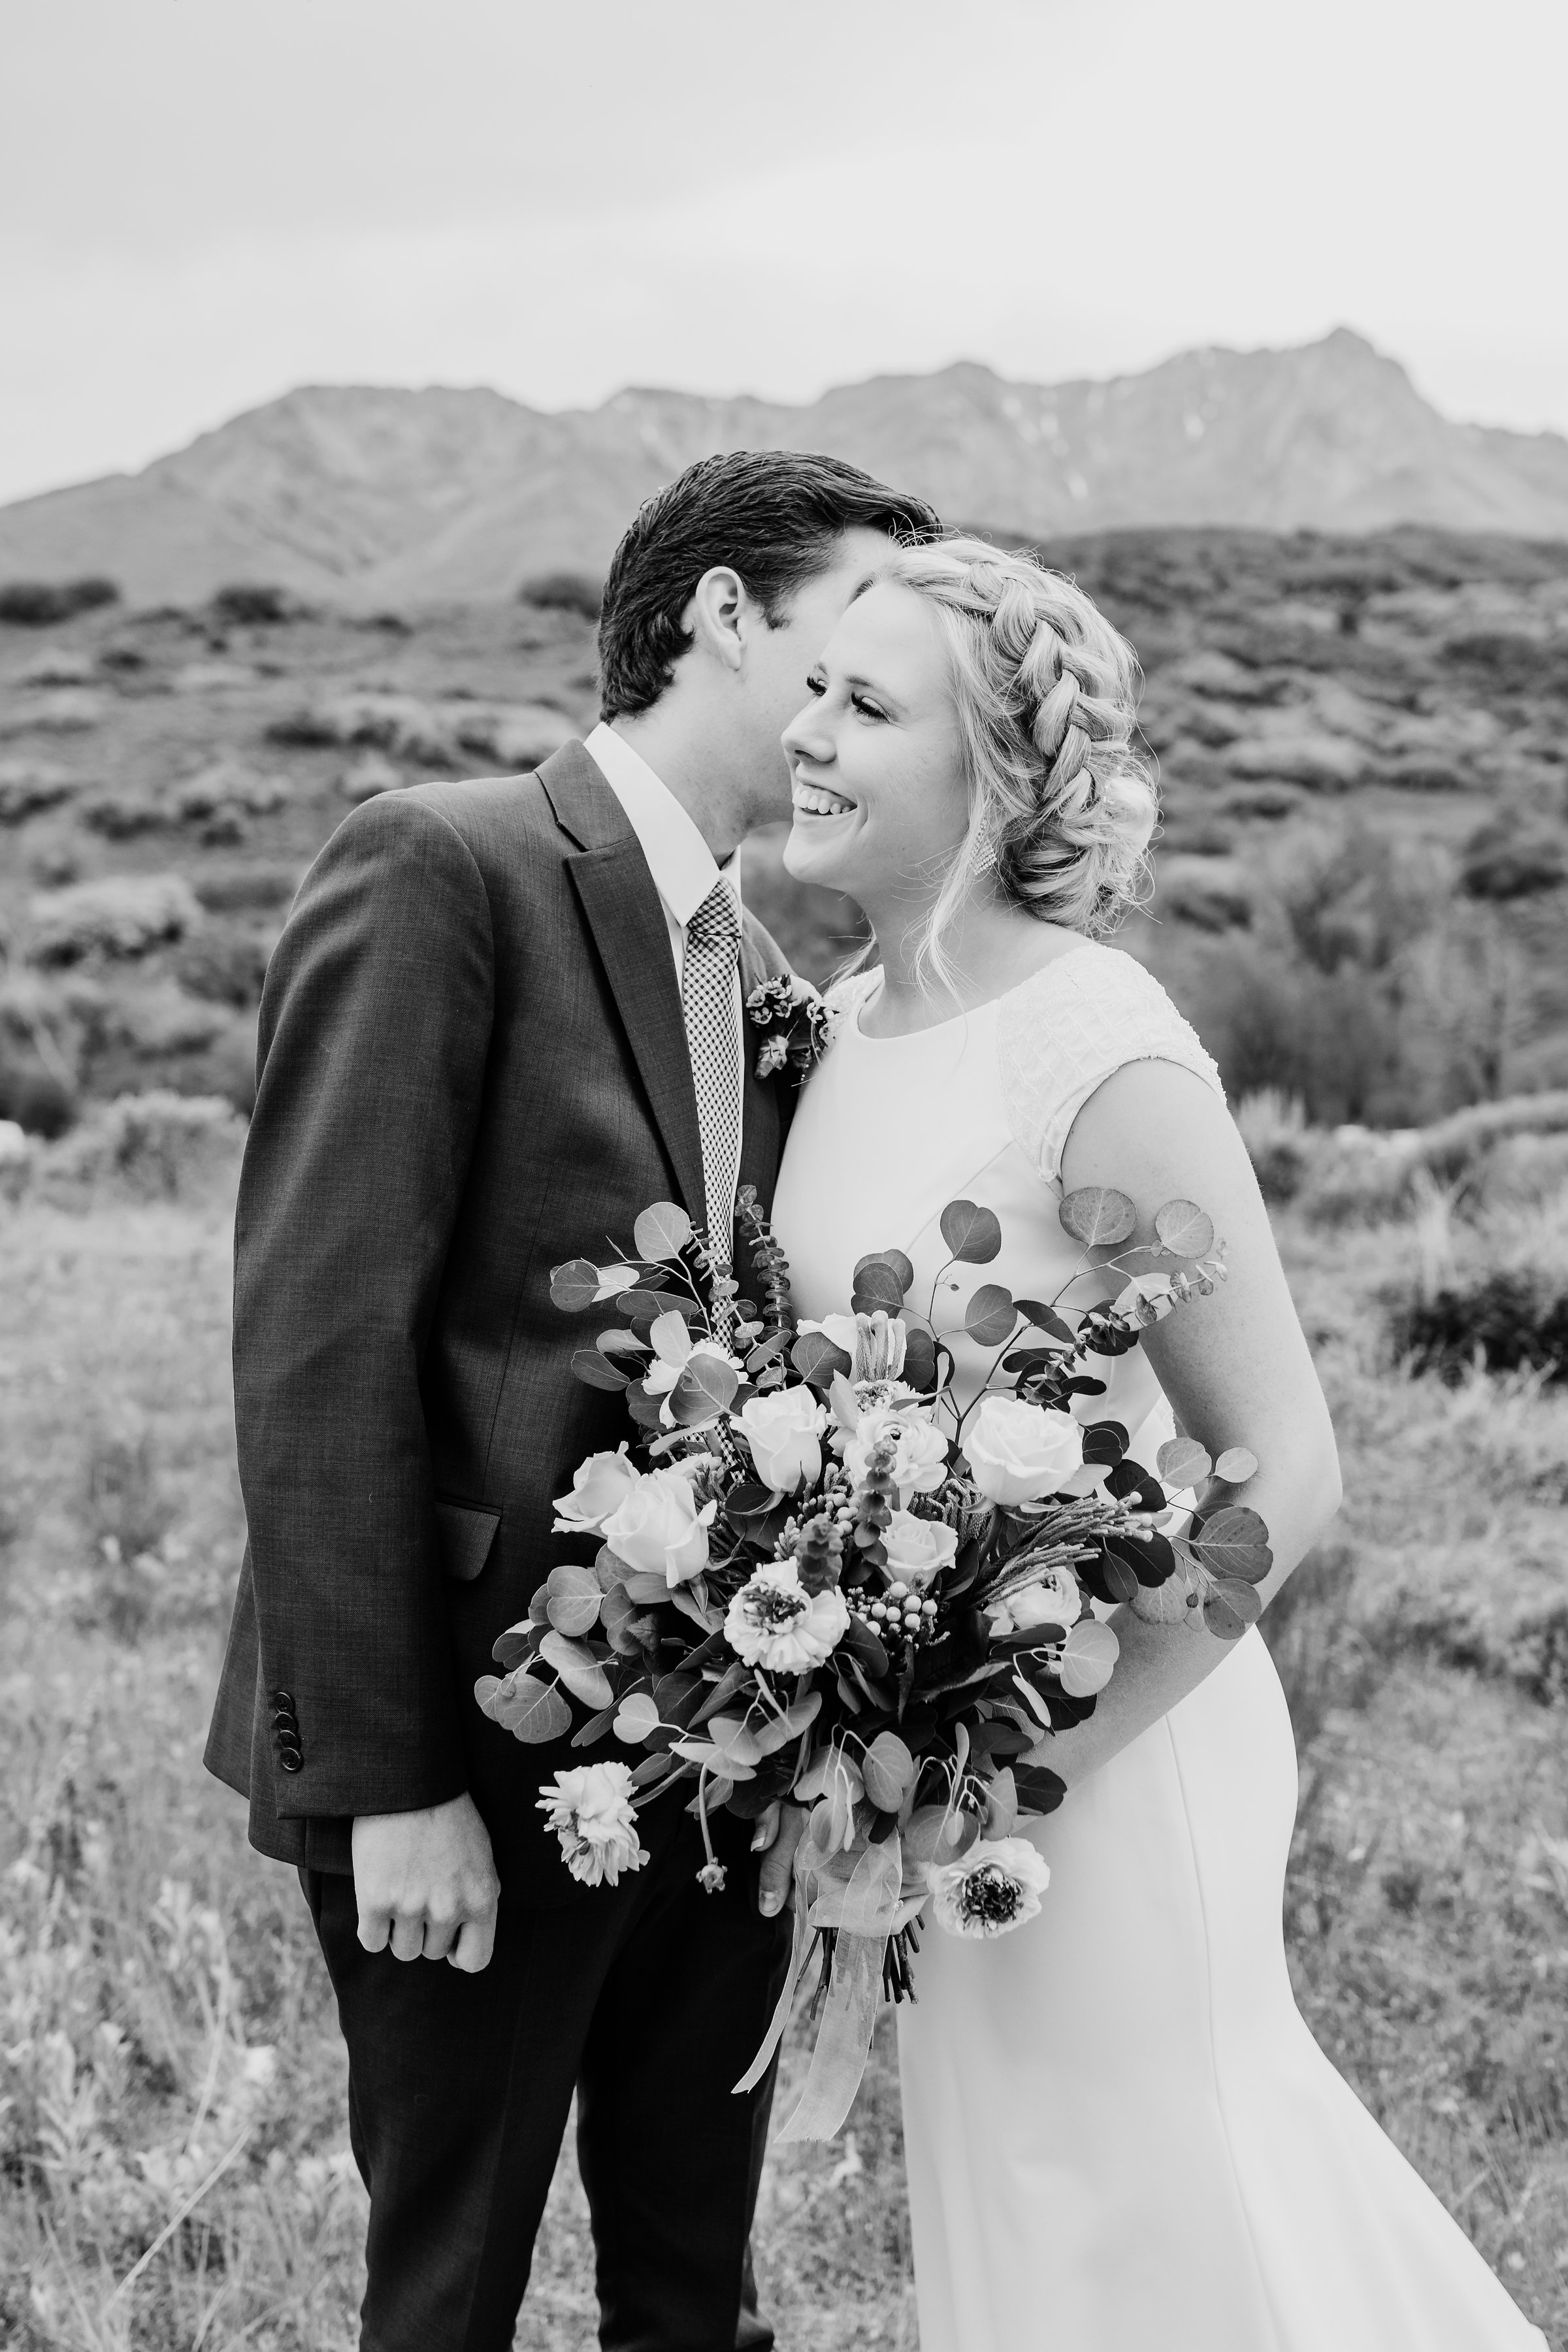 black and white bright image wedding day photography by calli richards in boulder co northern colorado wedding photographer